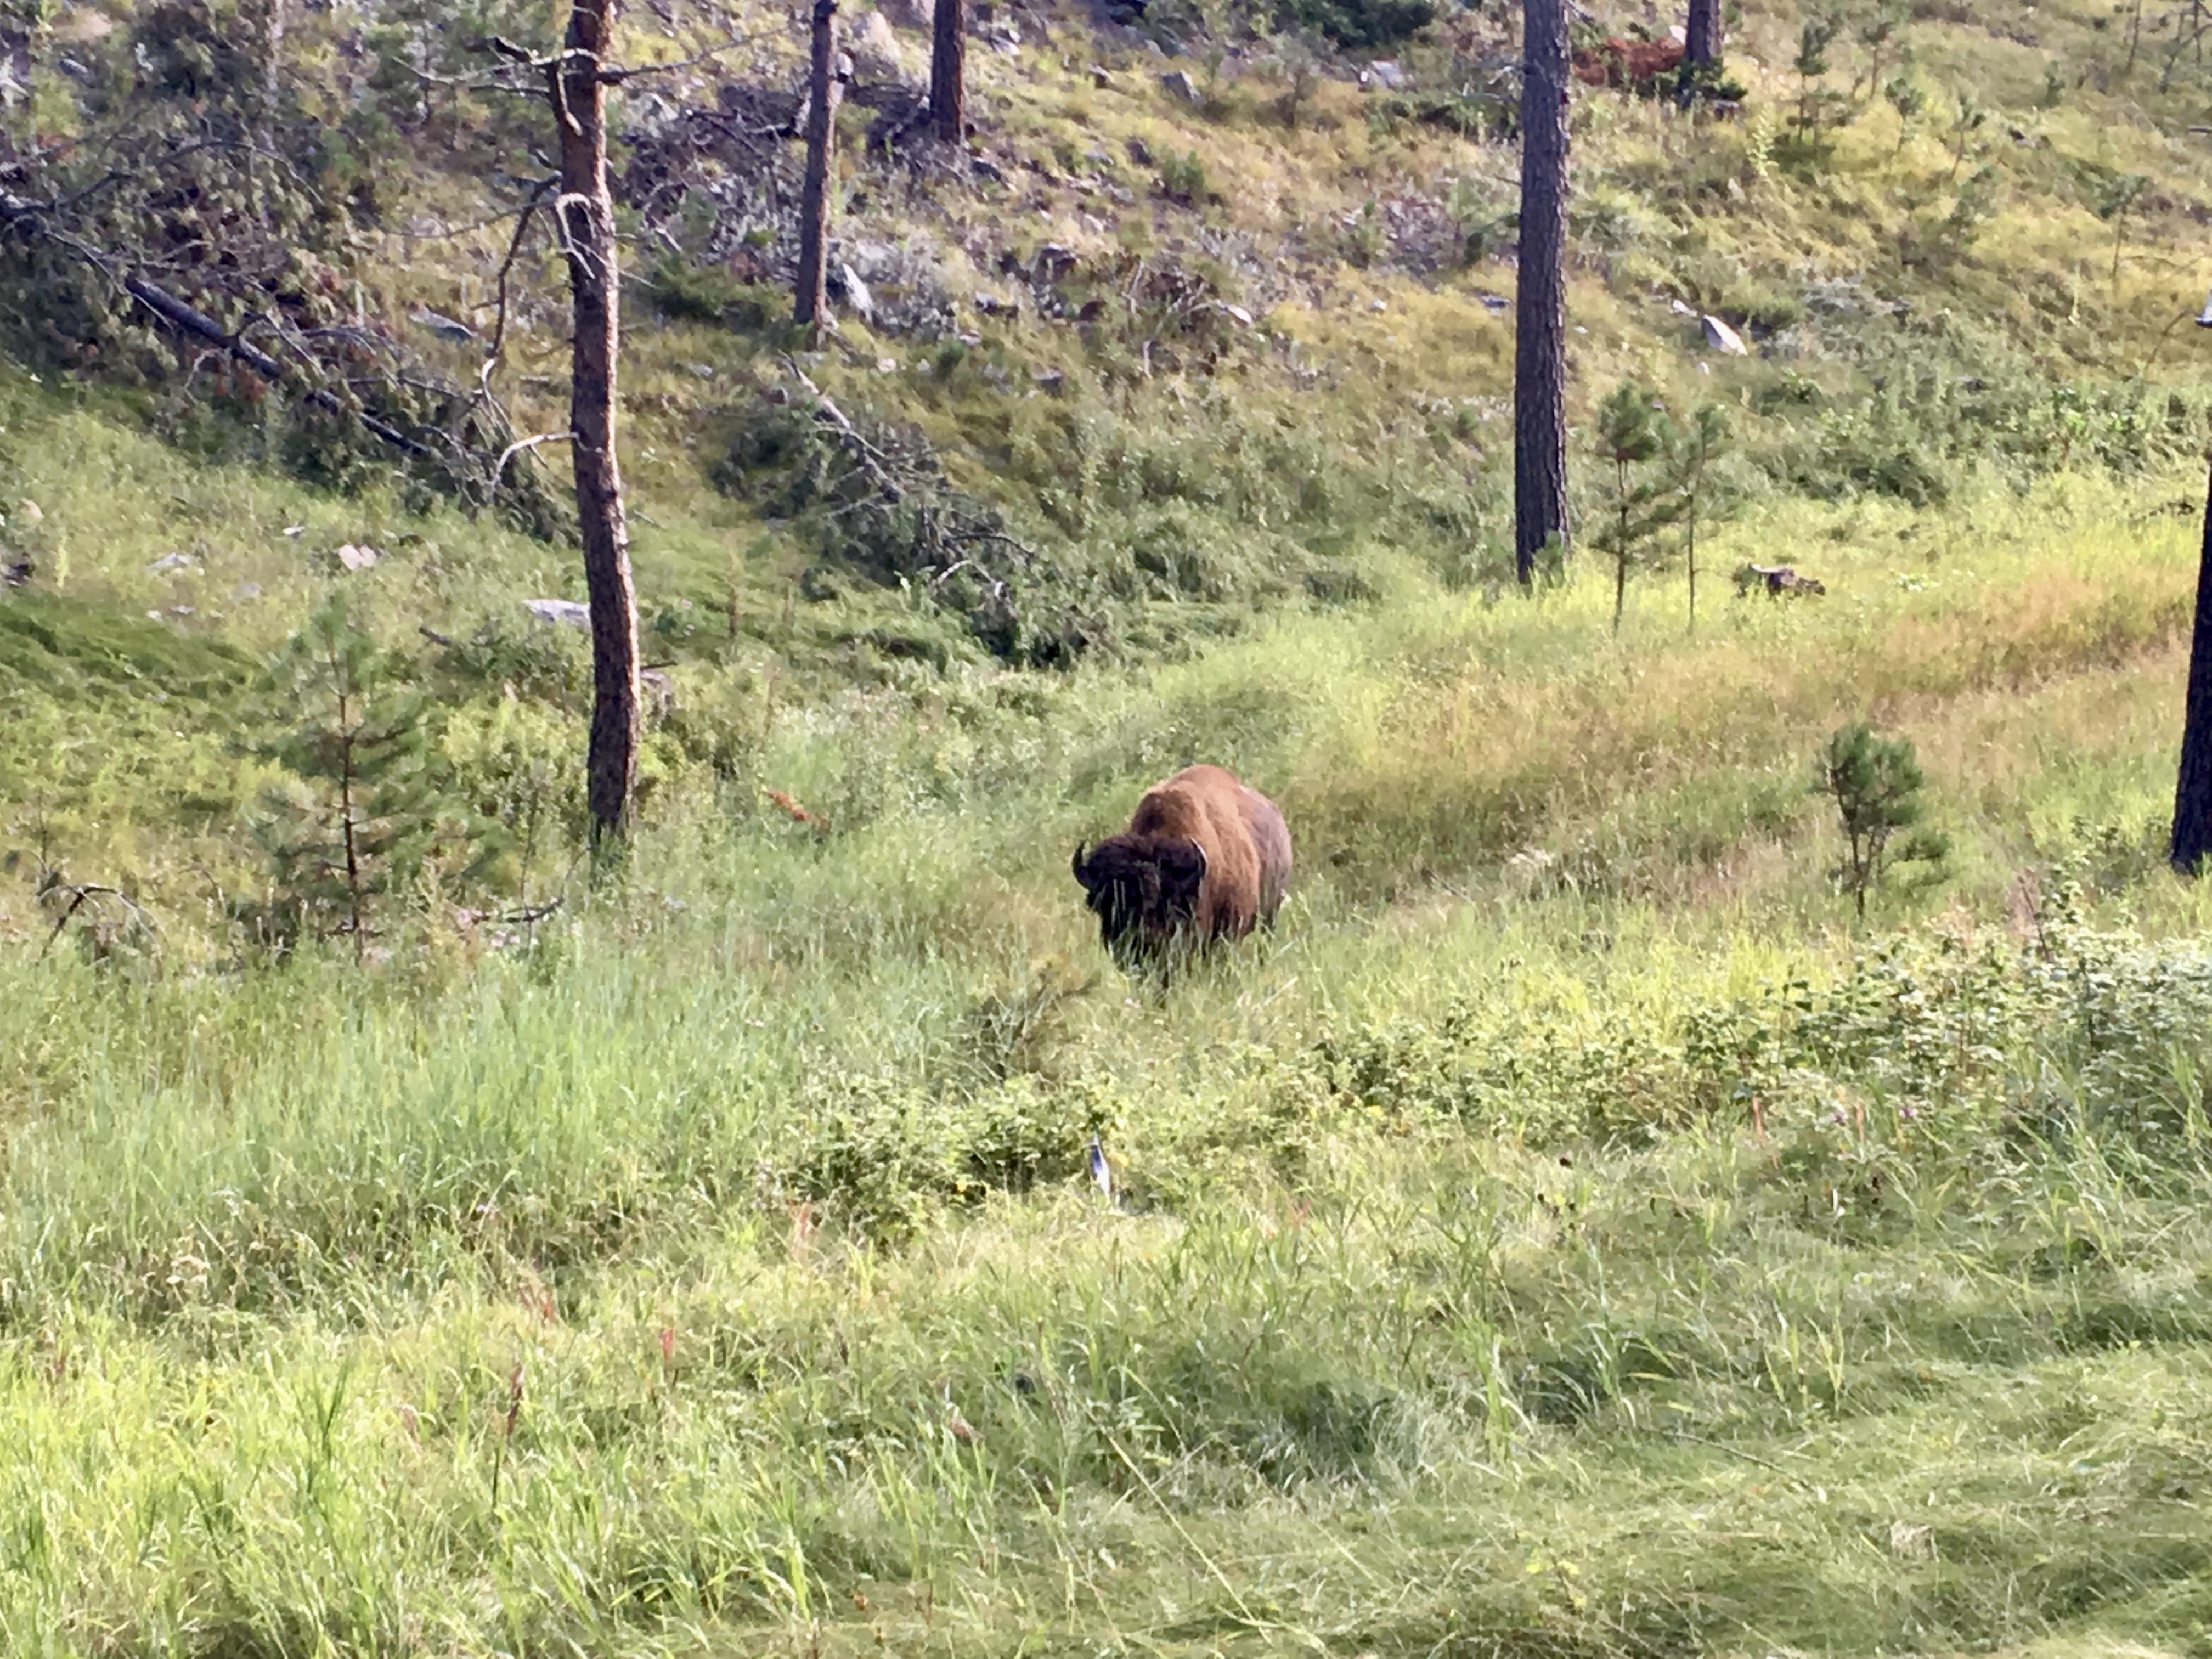 A bull bison who was blocking the trail early one morning in [Custer State Park,](https://gfp.sd.gov/parks/detail/custer-state-park/) South Dakota